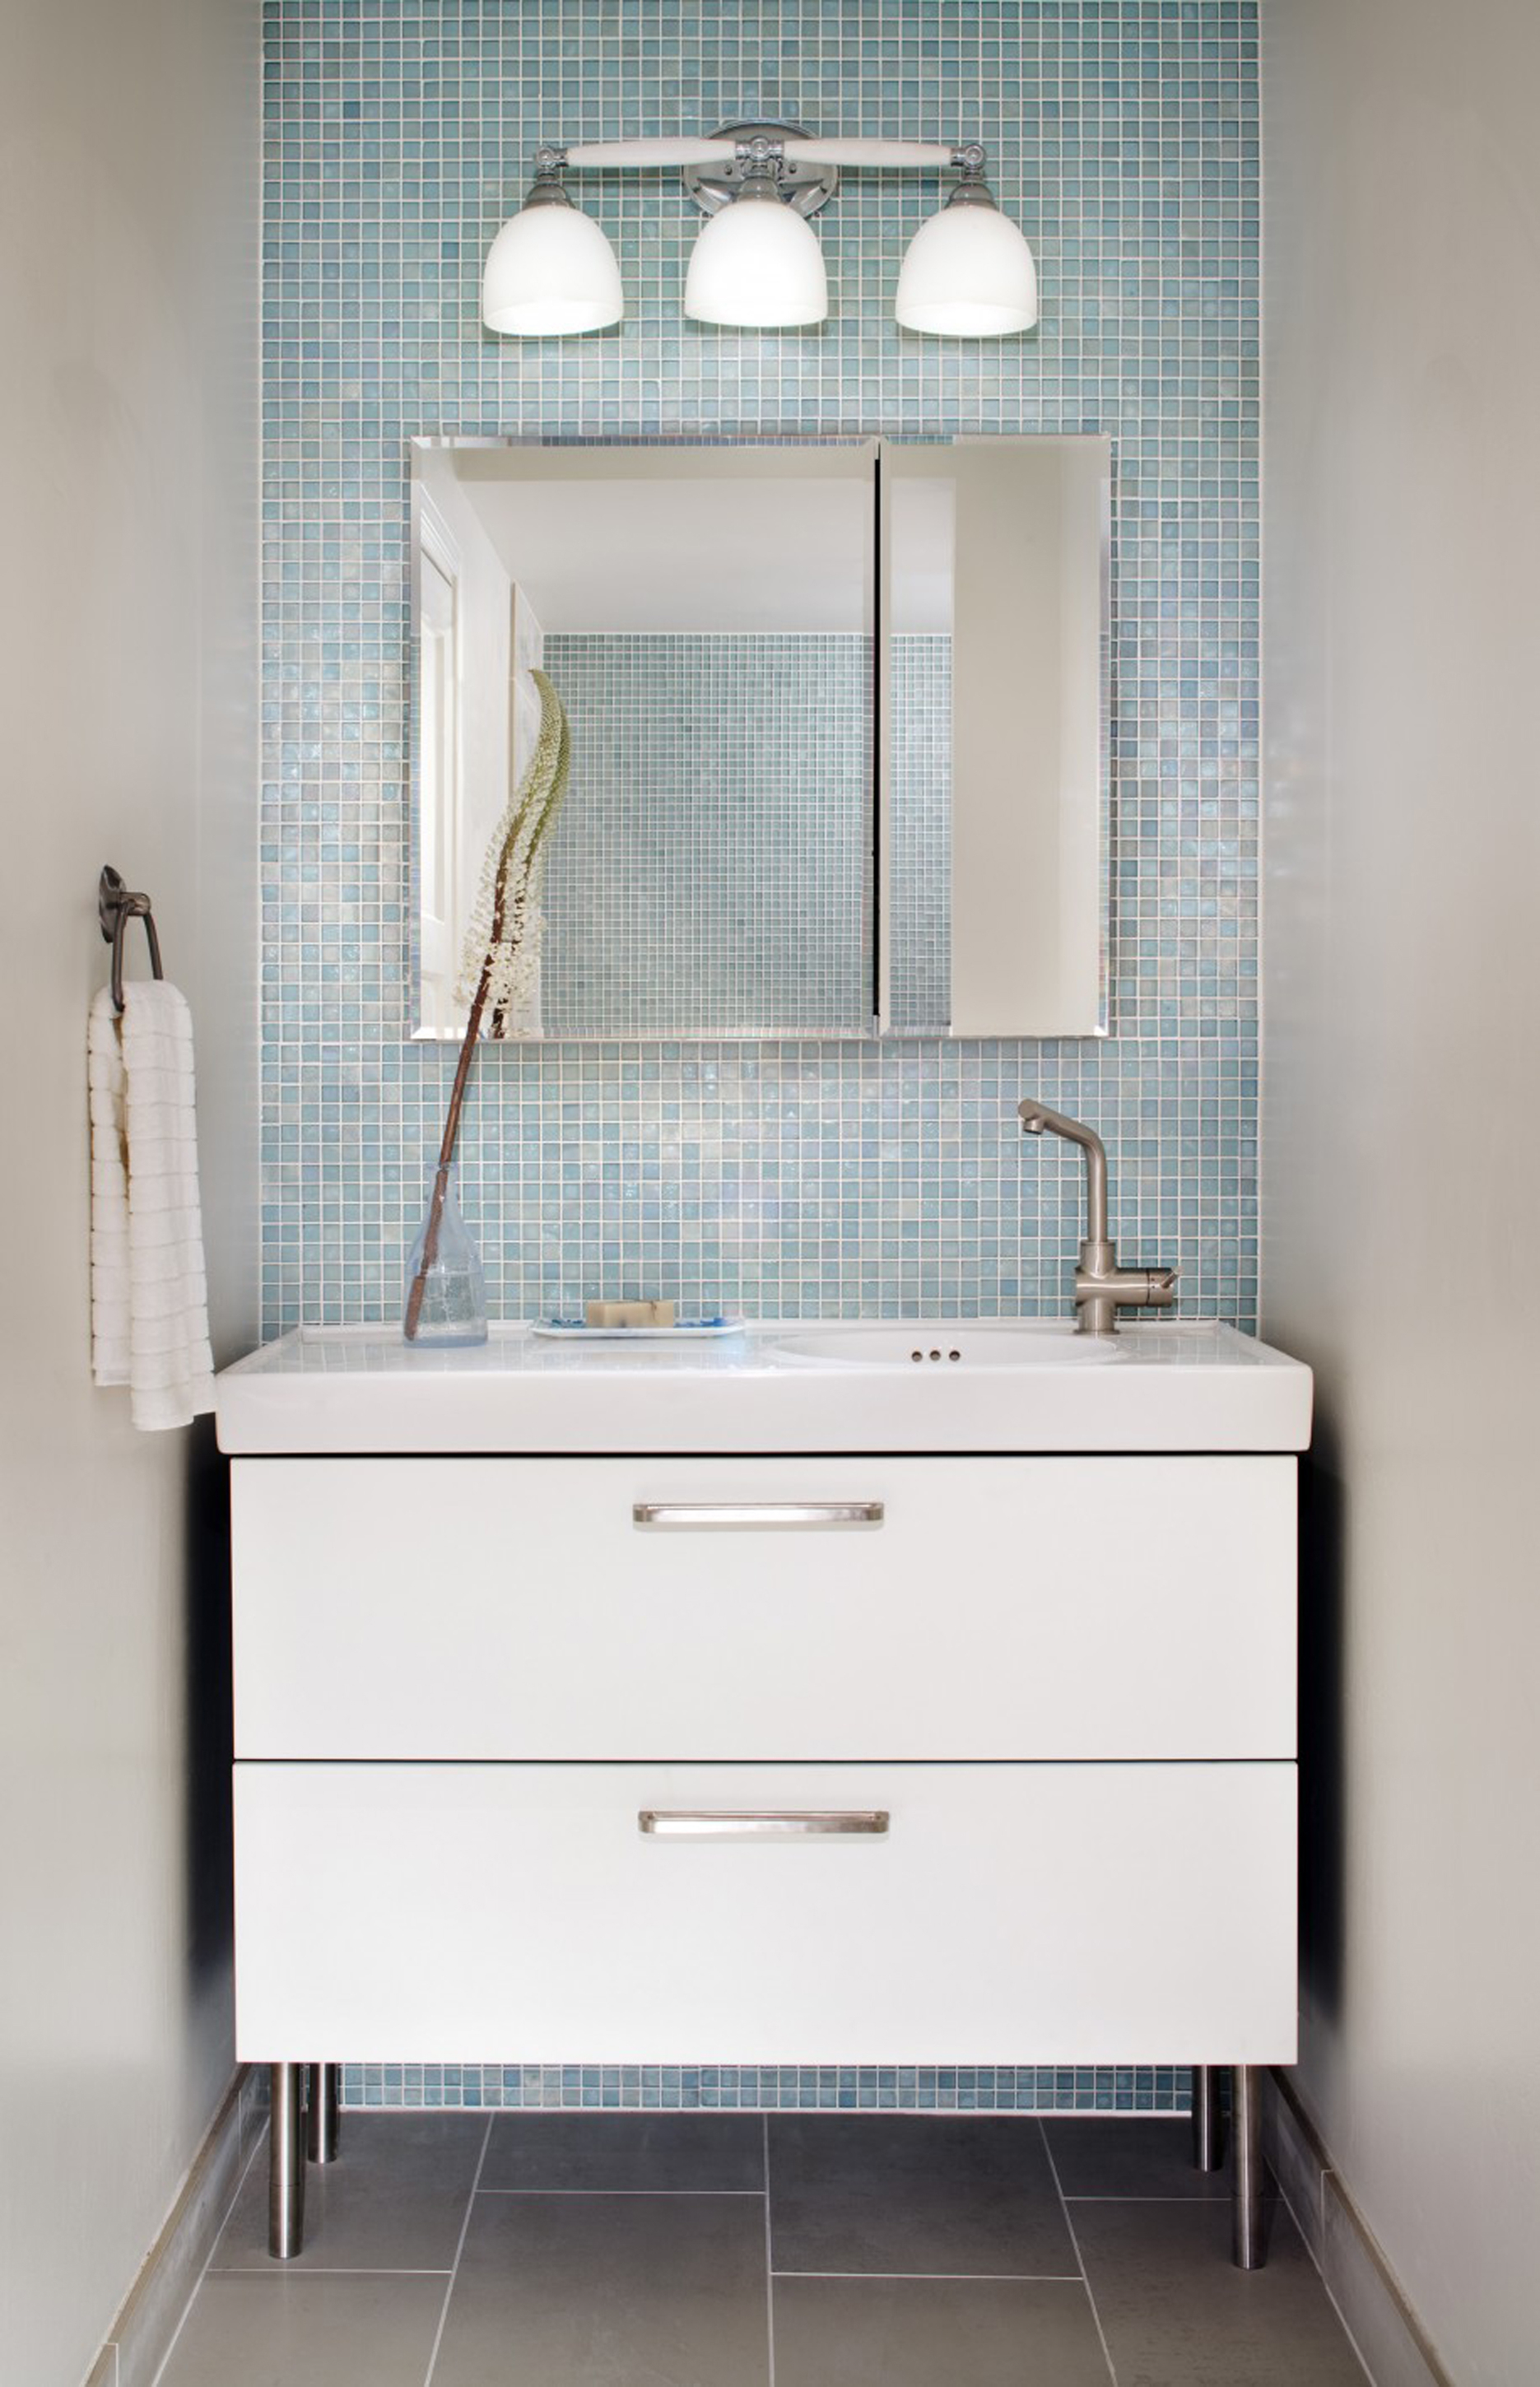 Luxury Blue Glass Tile With Square Mirror And White Wall Lamps And White Vanity With Silver Handles Cool Glass Tile Inspiration (Image 45 of 123)